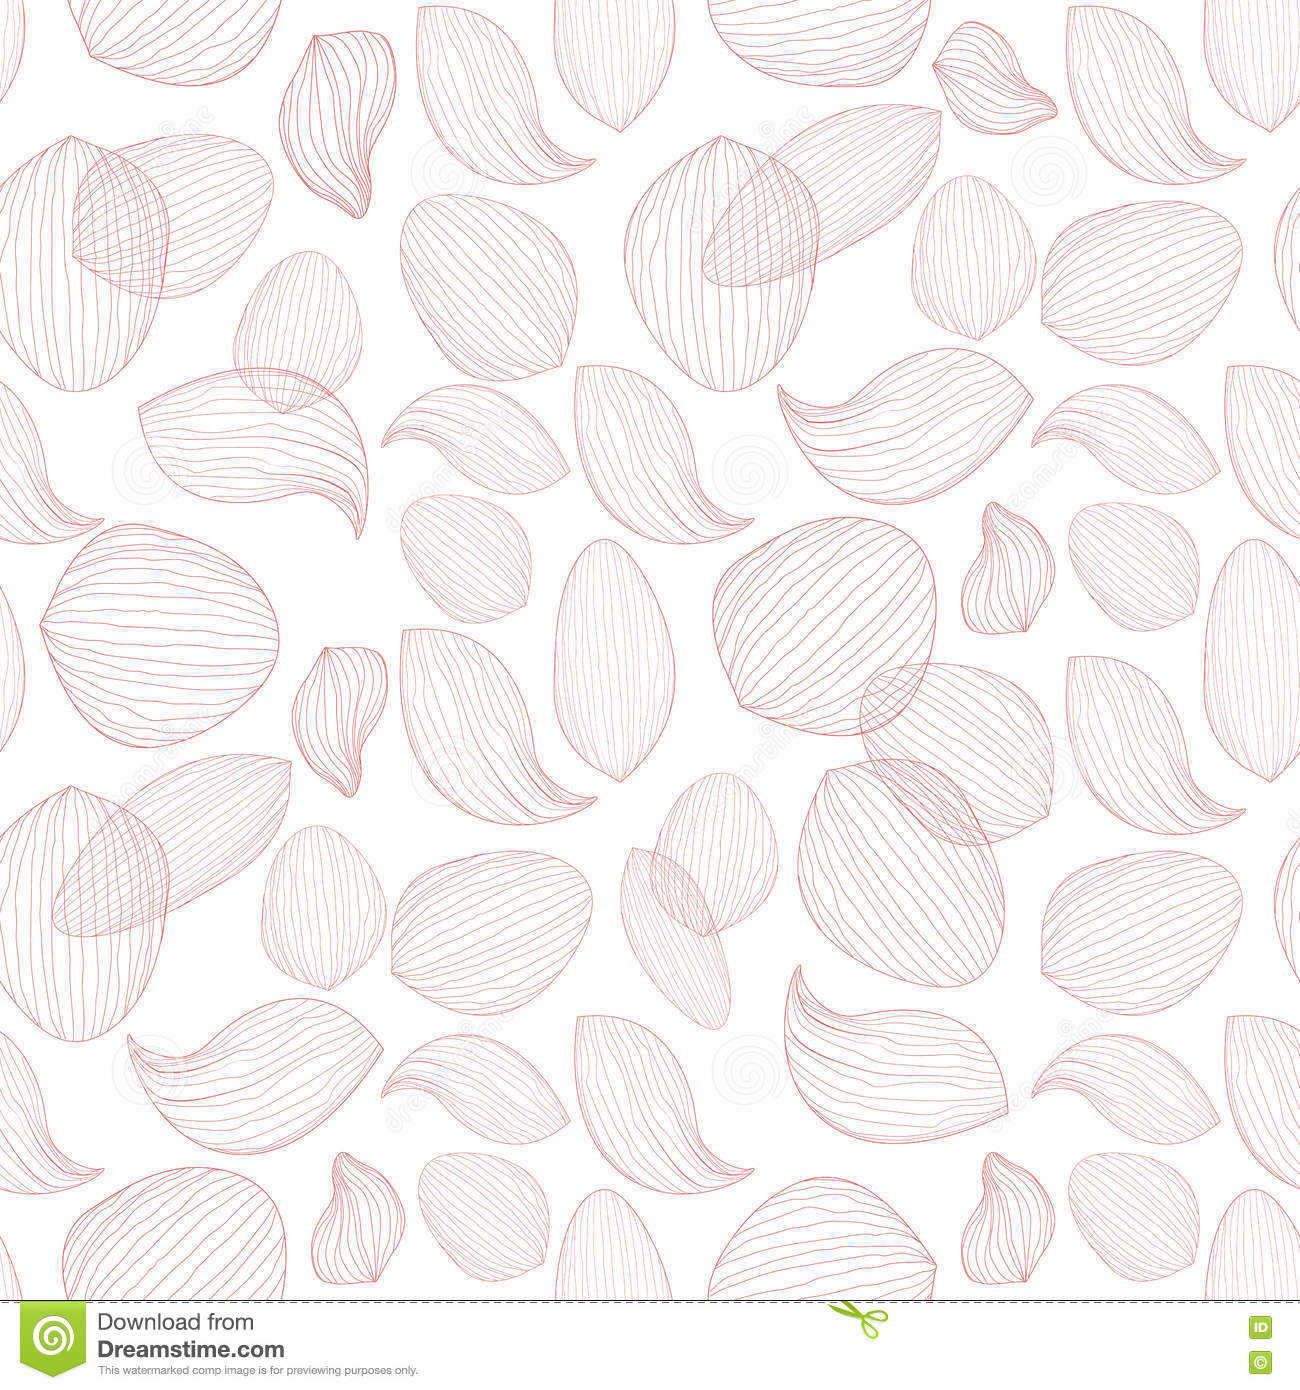 Delicate Lotus Flower Petals On White Background Outline Vector